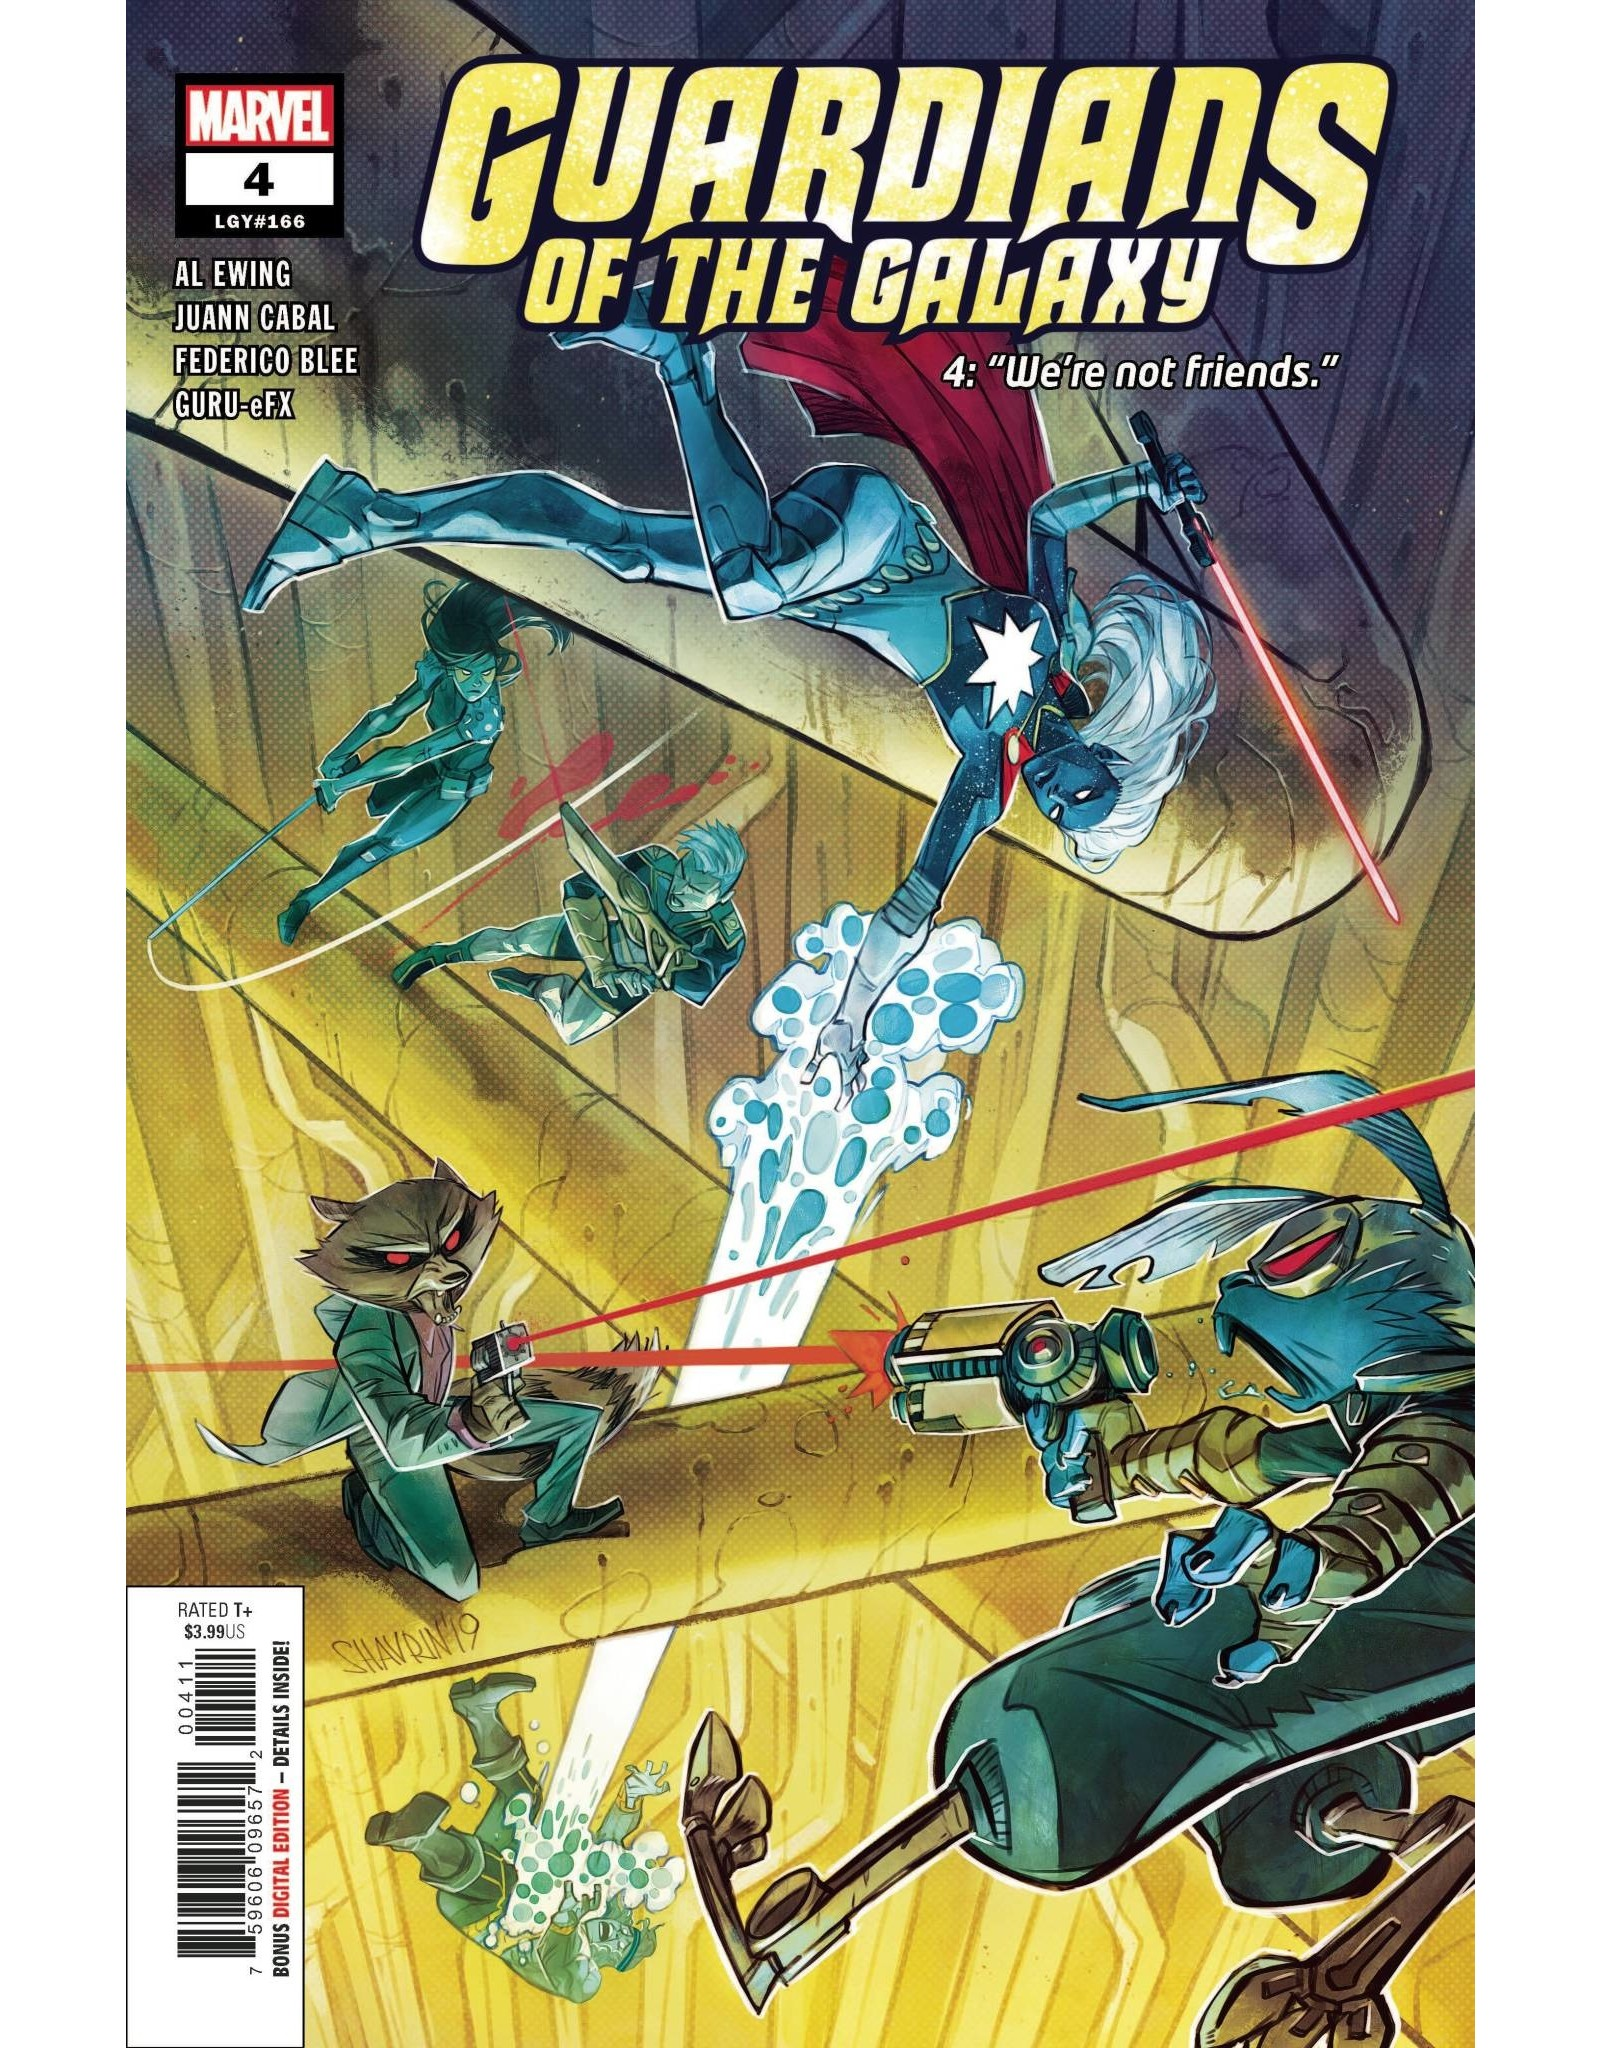 MARVEL COMICS GUARDIANS OF THE GALAXY #4